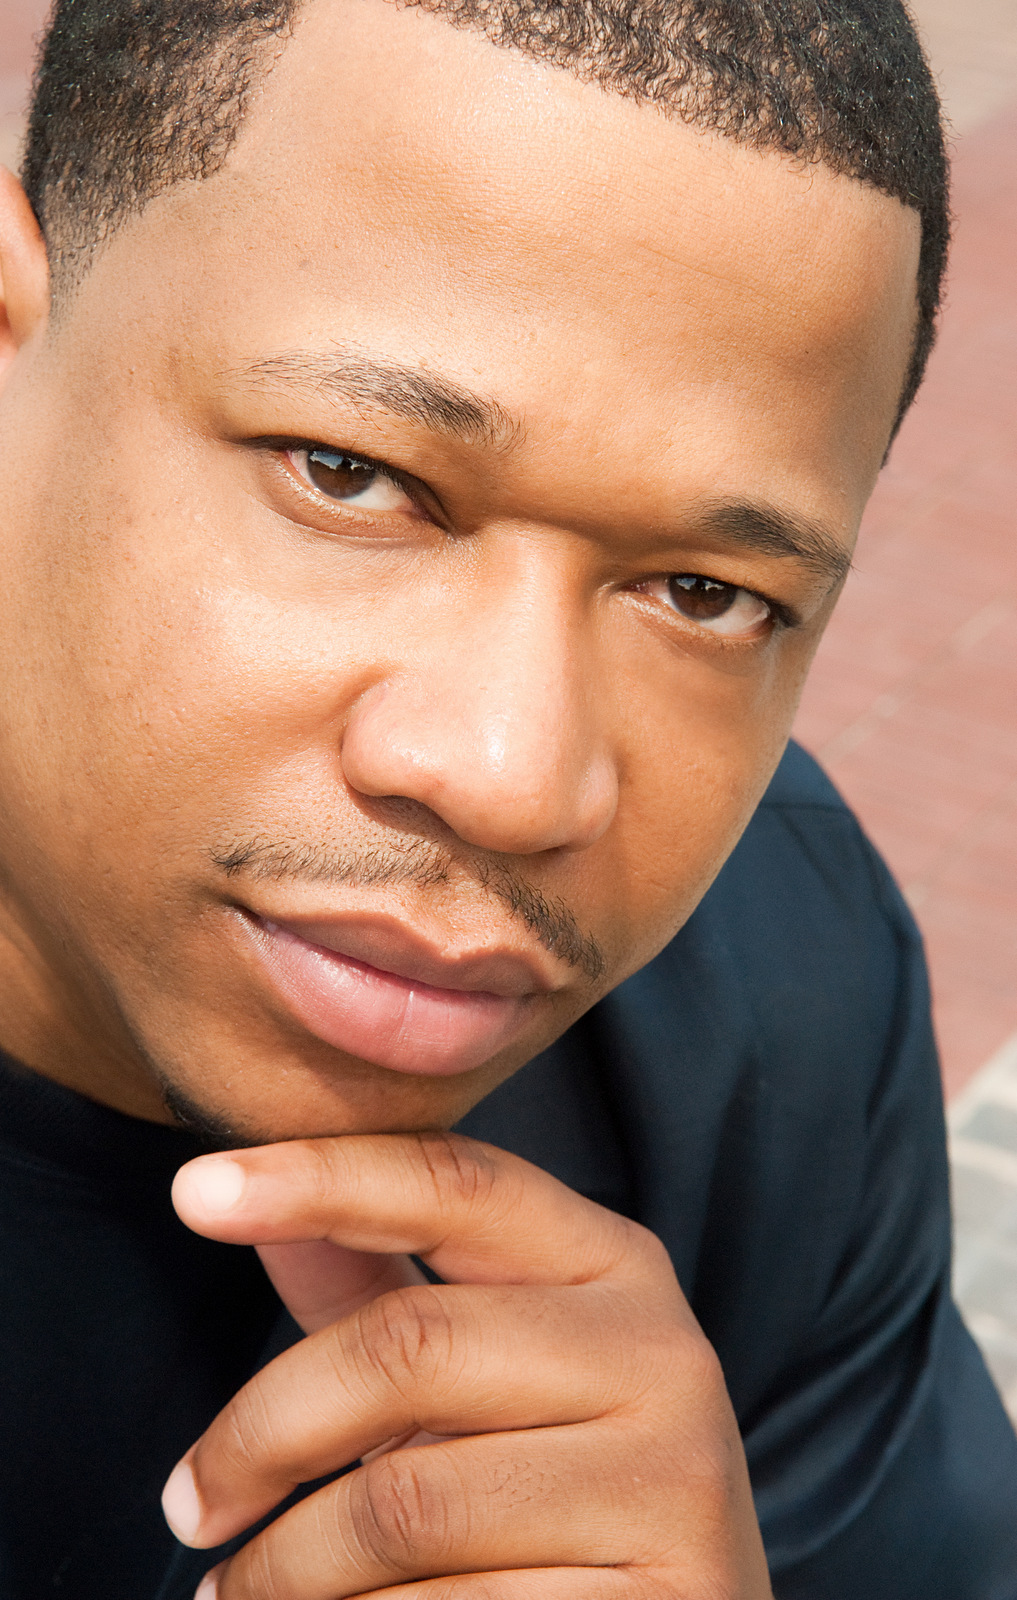 Entrepreneur of the Week: Forrest Tuff, One Vision Productions